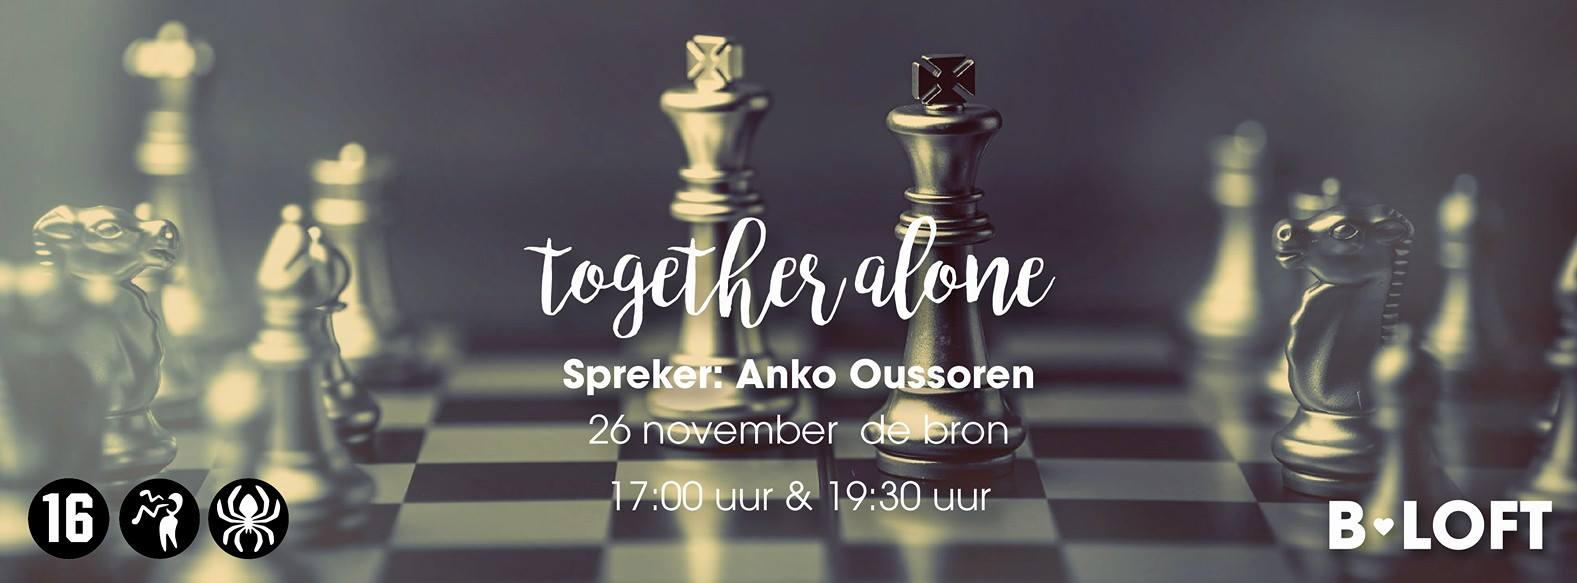 B.LOFT 26-11-2017 Together Alone